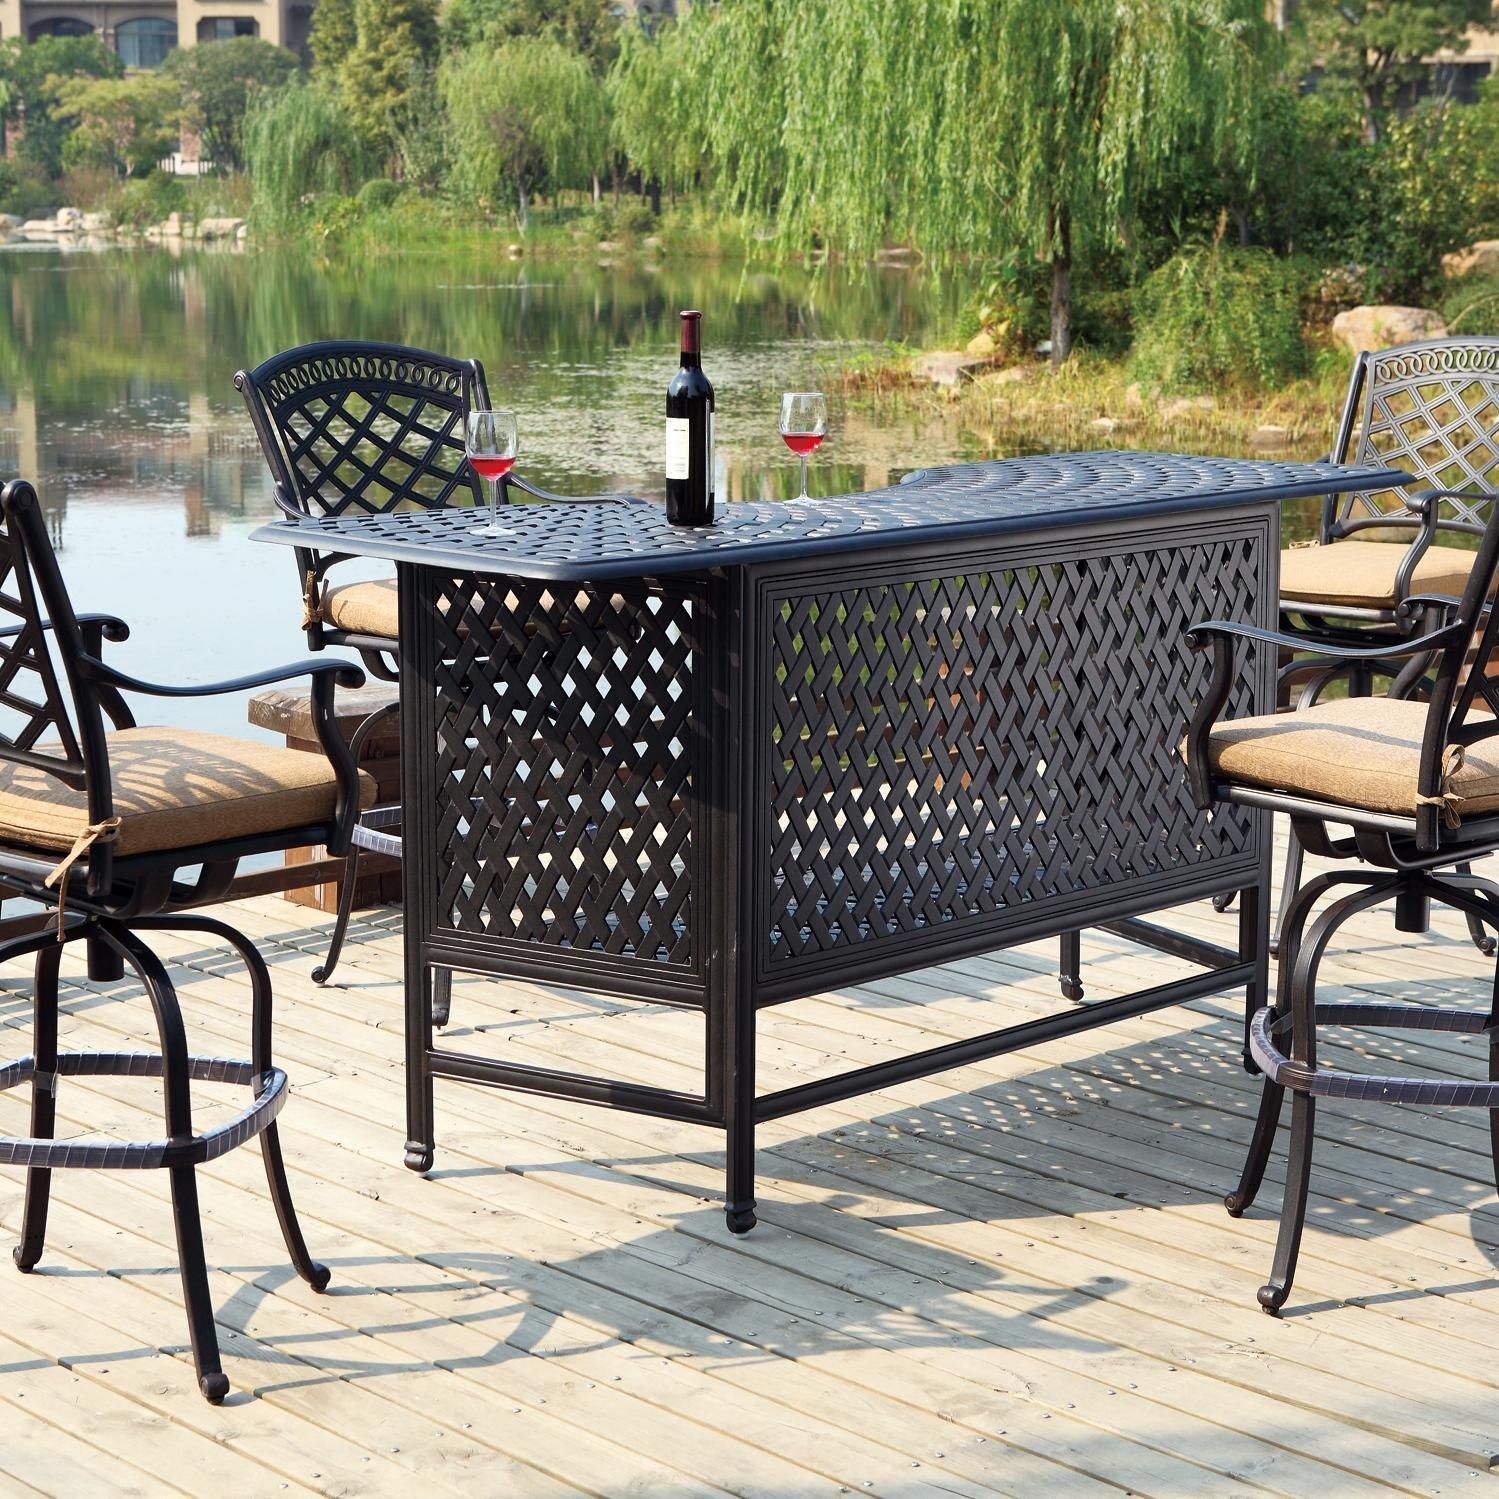 Why an outdoor patio bar is exactly what you need